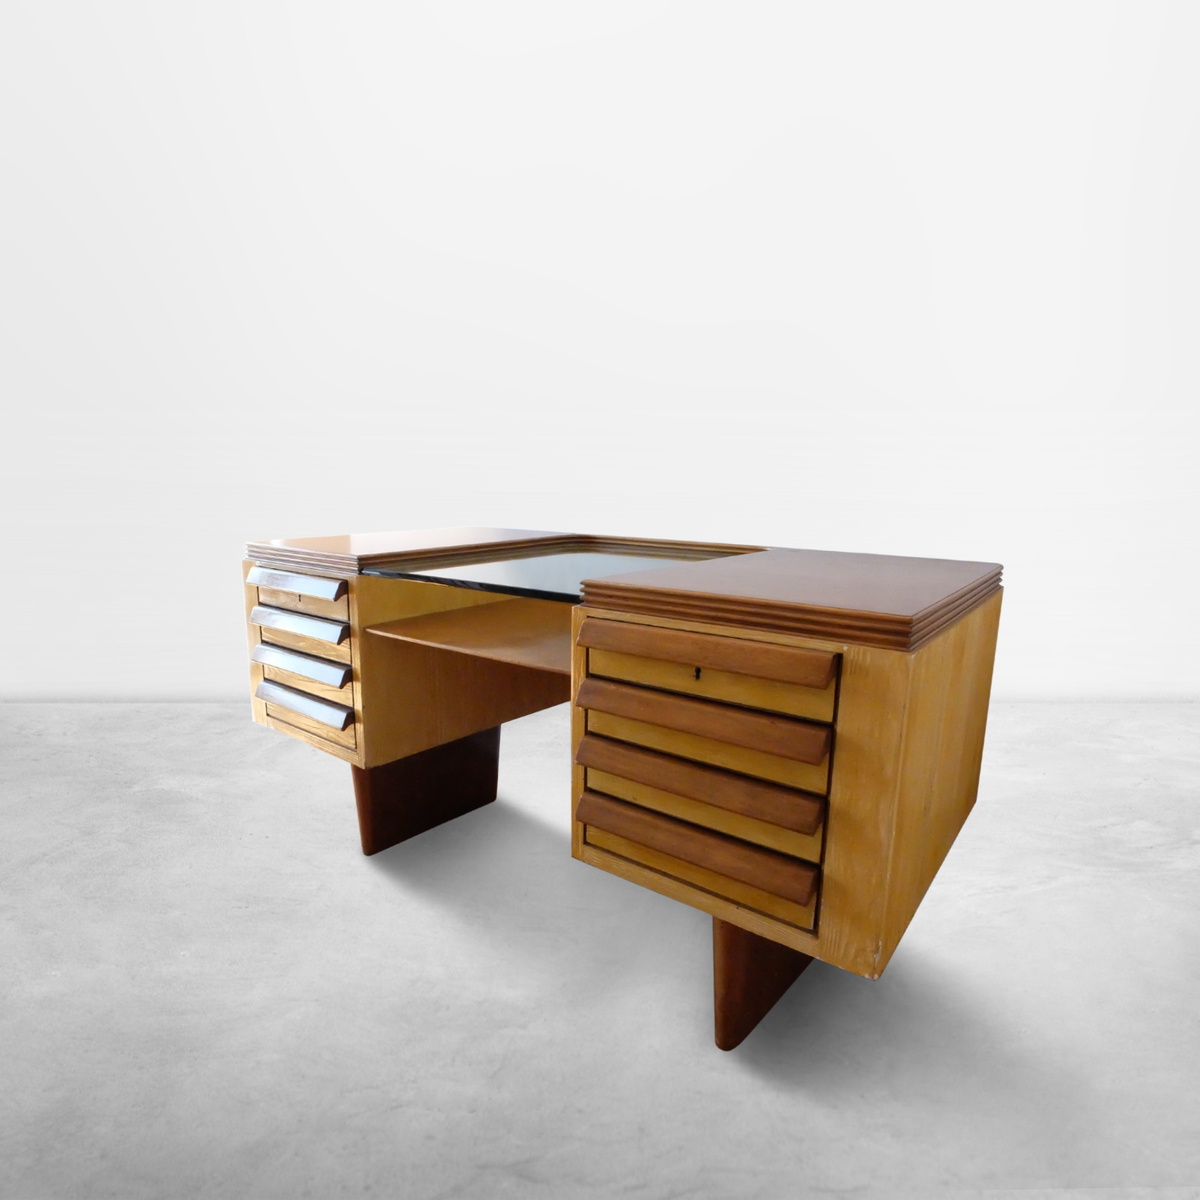 Italian Mid-Century stately wooden desk with glass top, 1950s